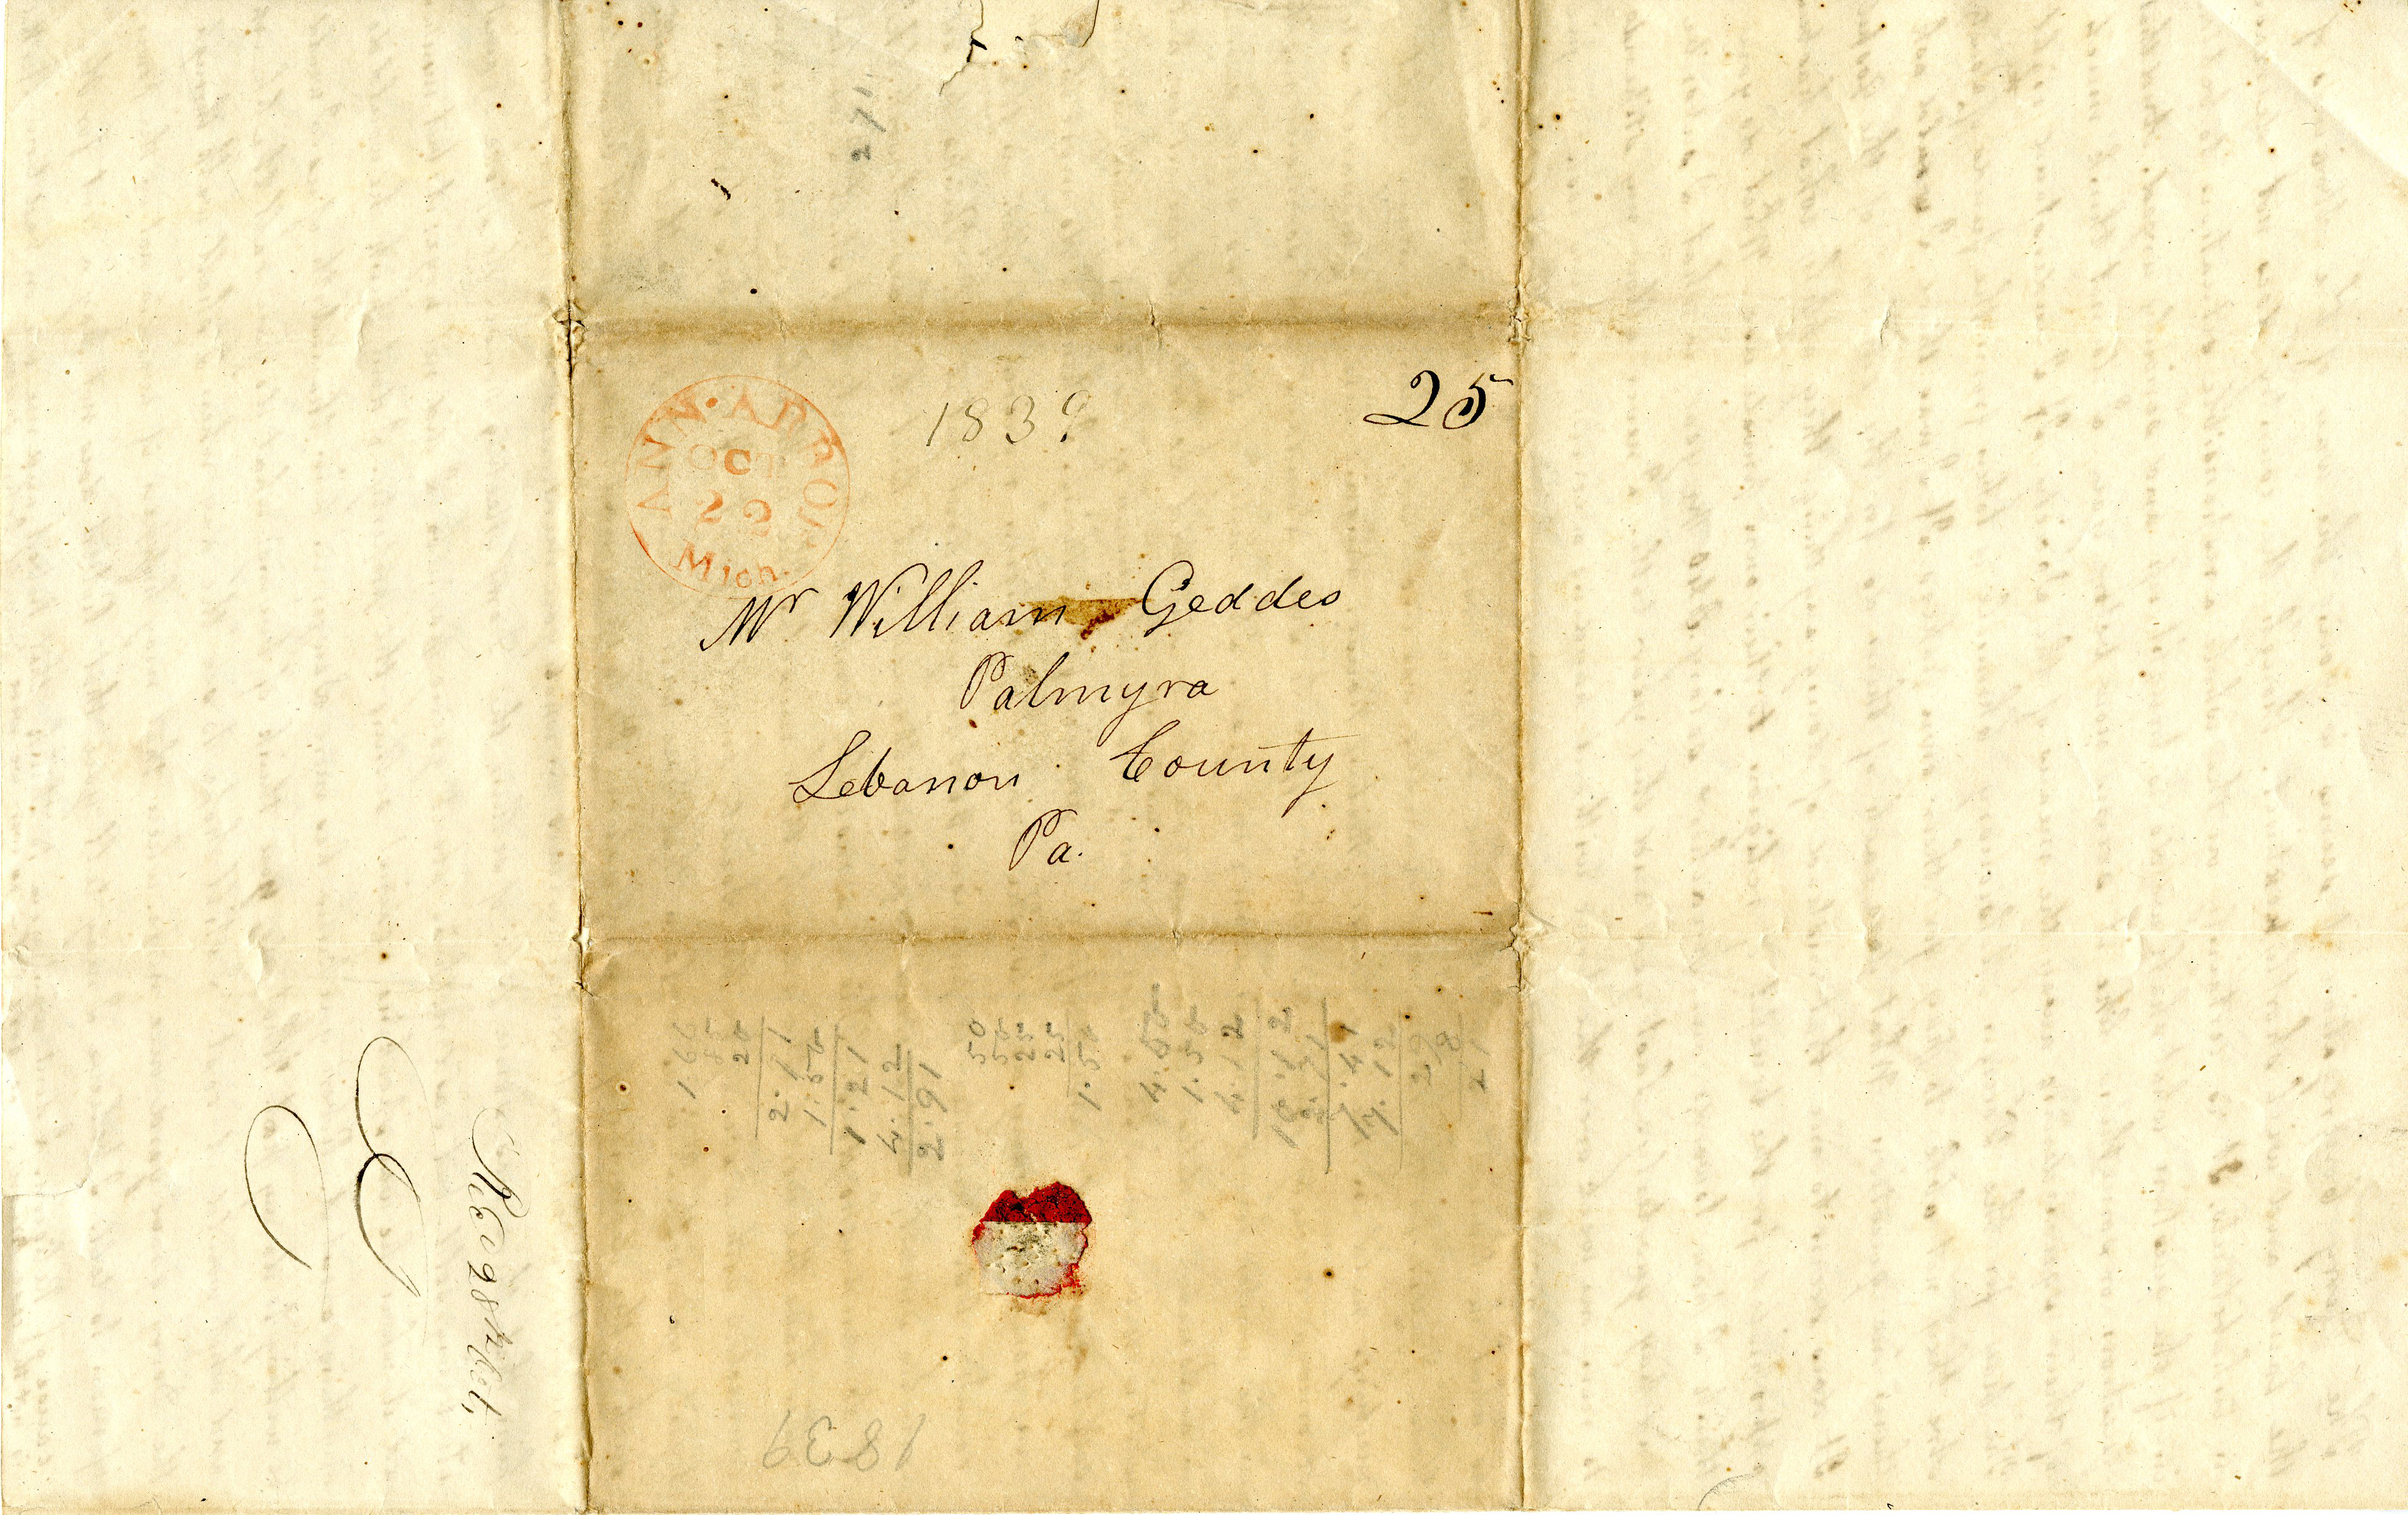 Letter From John Geddes to William Geddes, October 21, 1839 image